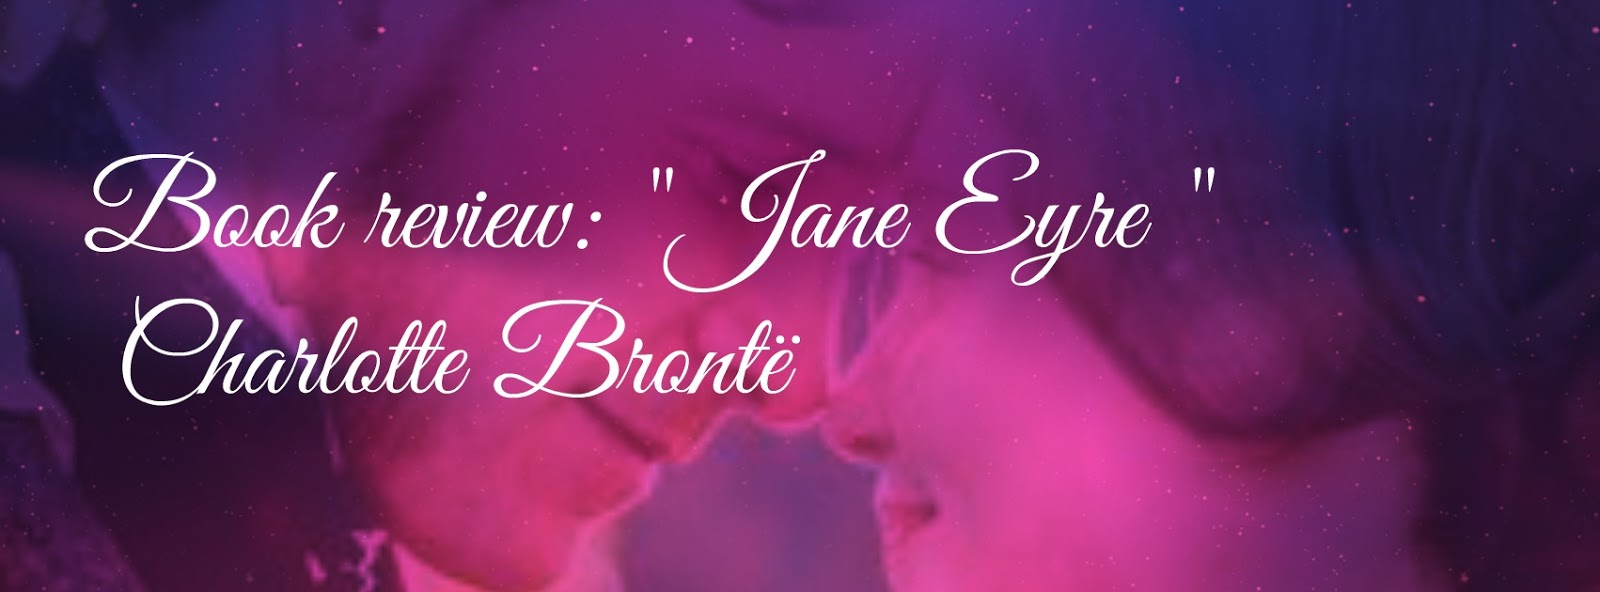 book review jane eyre Book review: jane eyre by charlotte bronte 5/5 stars once you get into her adult life it was a great page turner and one of the best gothic love stories i have ever.